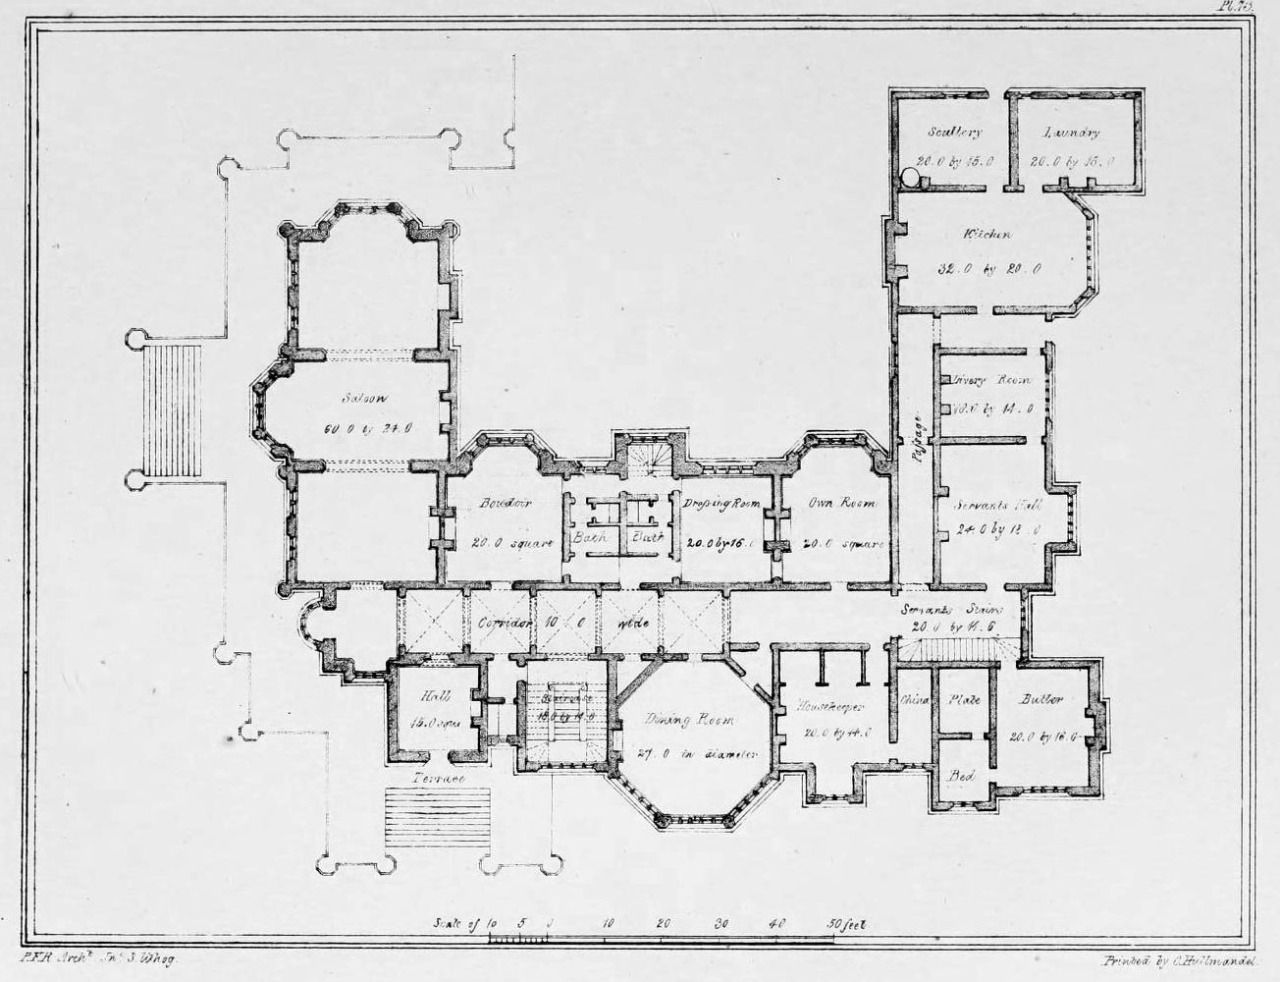 England Country Houses Floors Plans Architecture Floors Large Country Buildings Plans Floor Pl Architectural Floor Plans Architecture Mapping Floor Plans